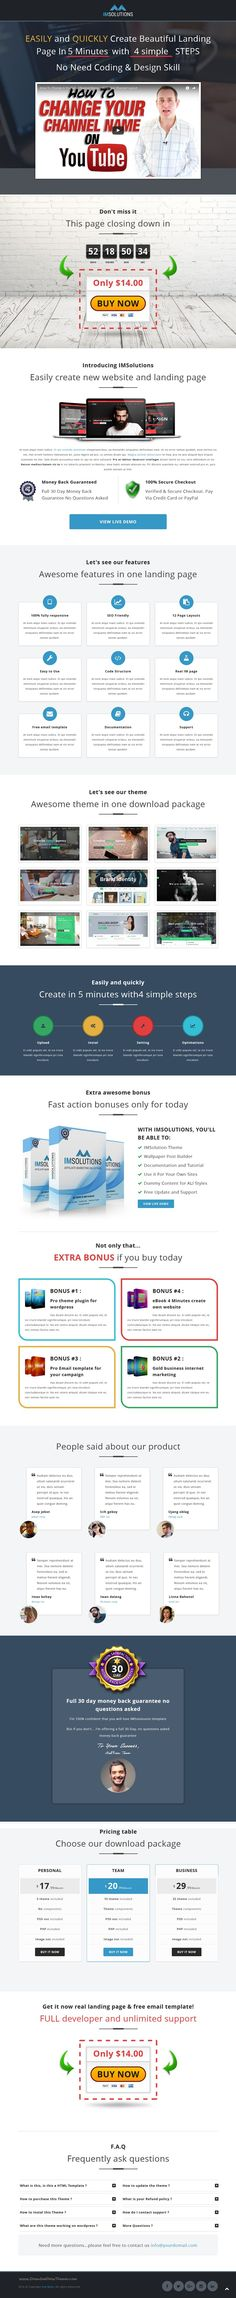 The Only Checklist You Need for Really Good Email Design - marketing email template